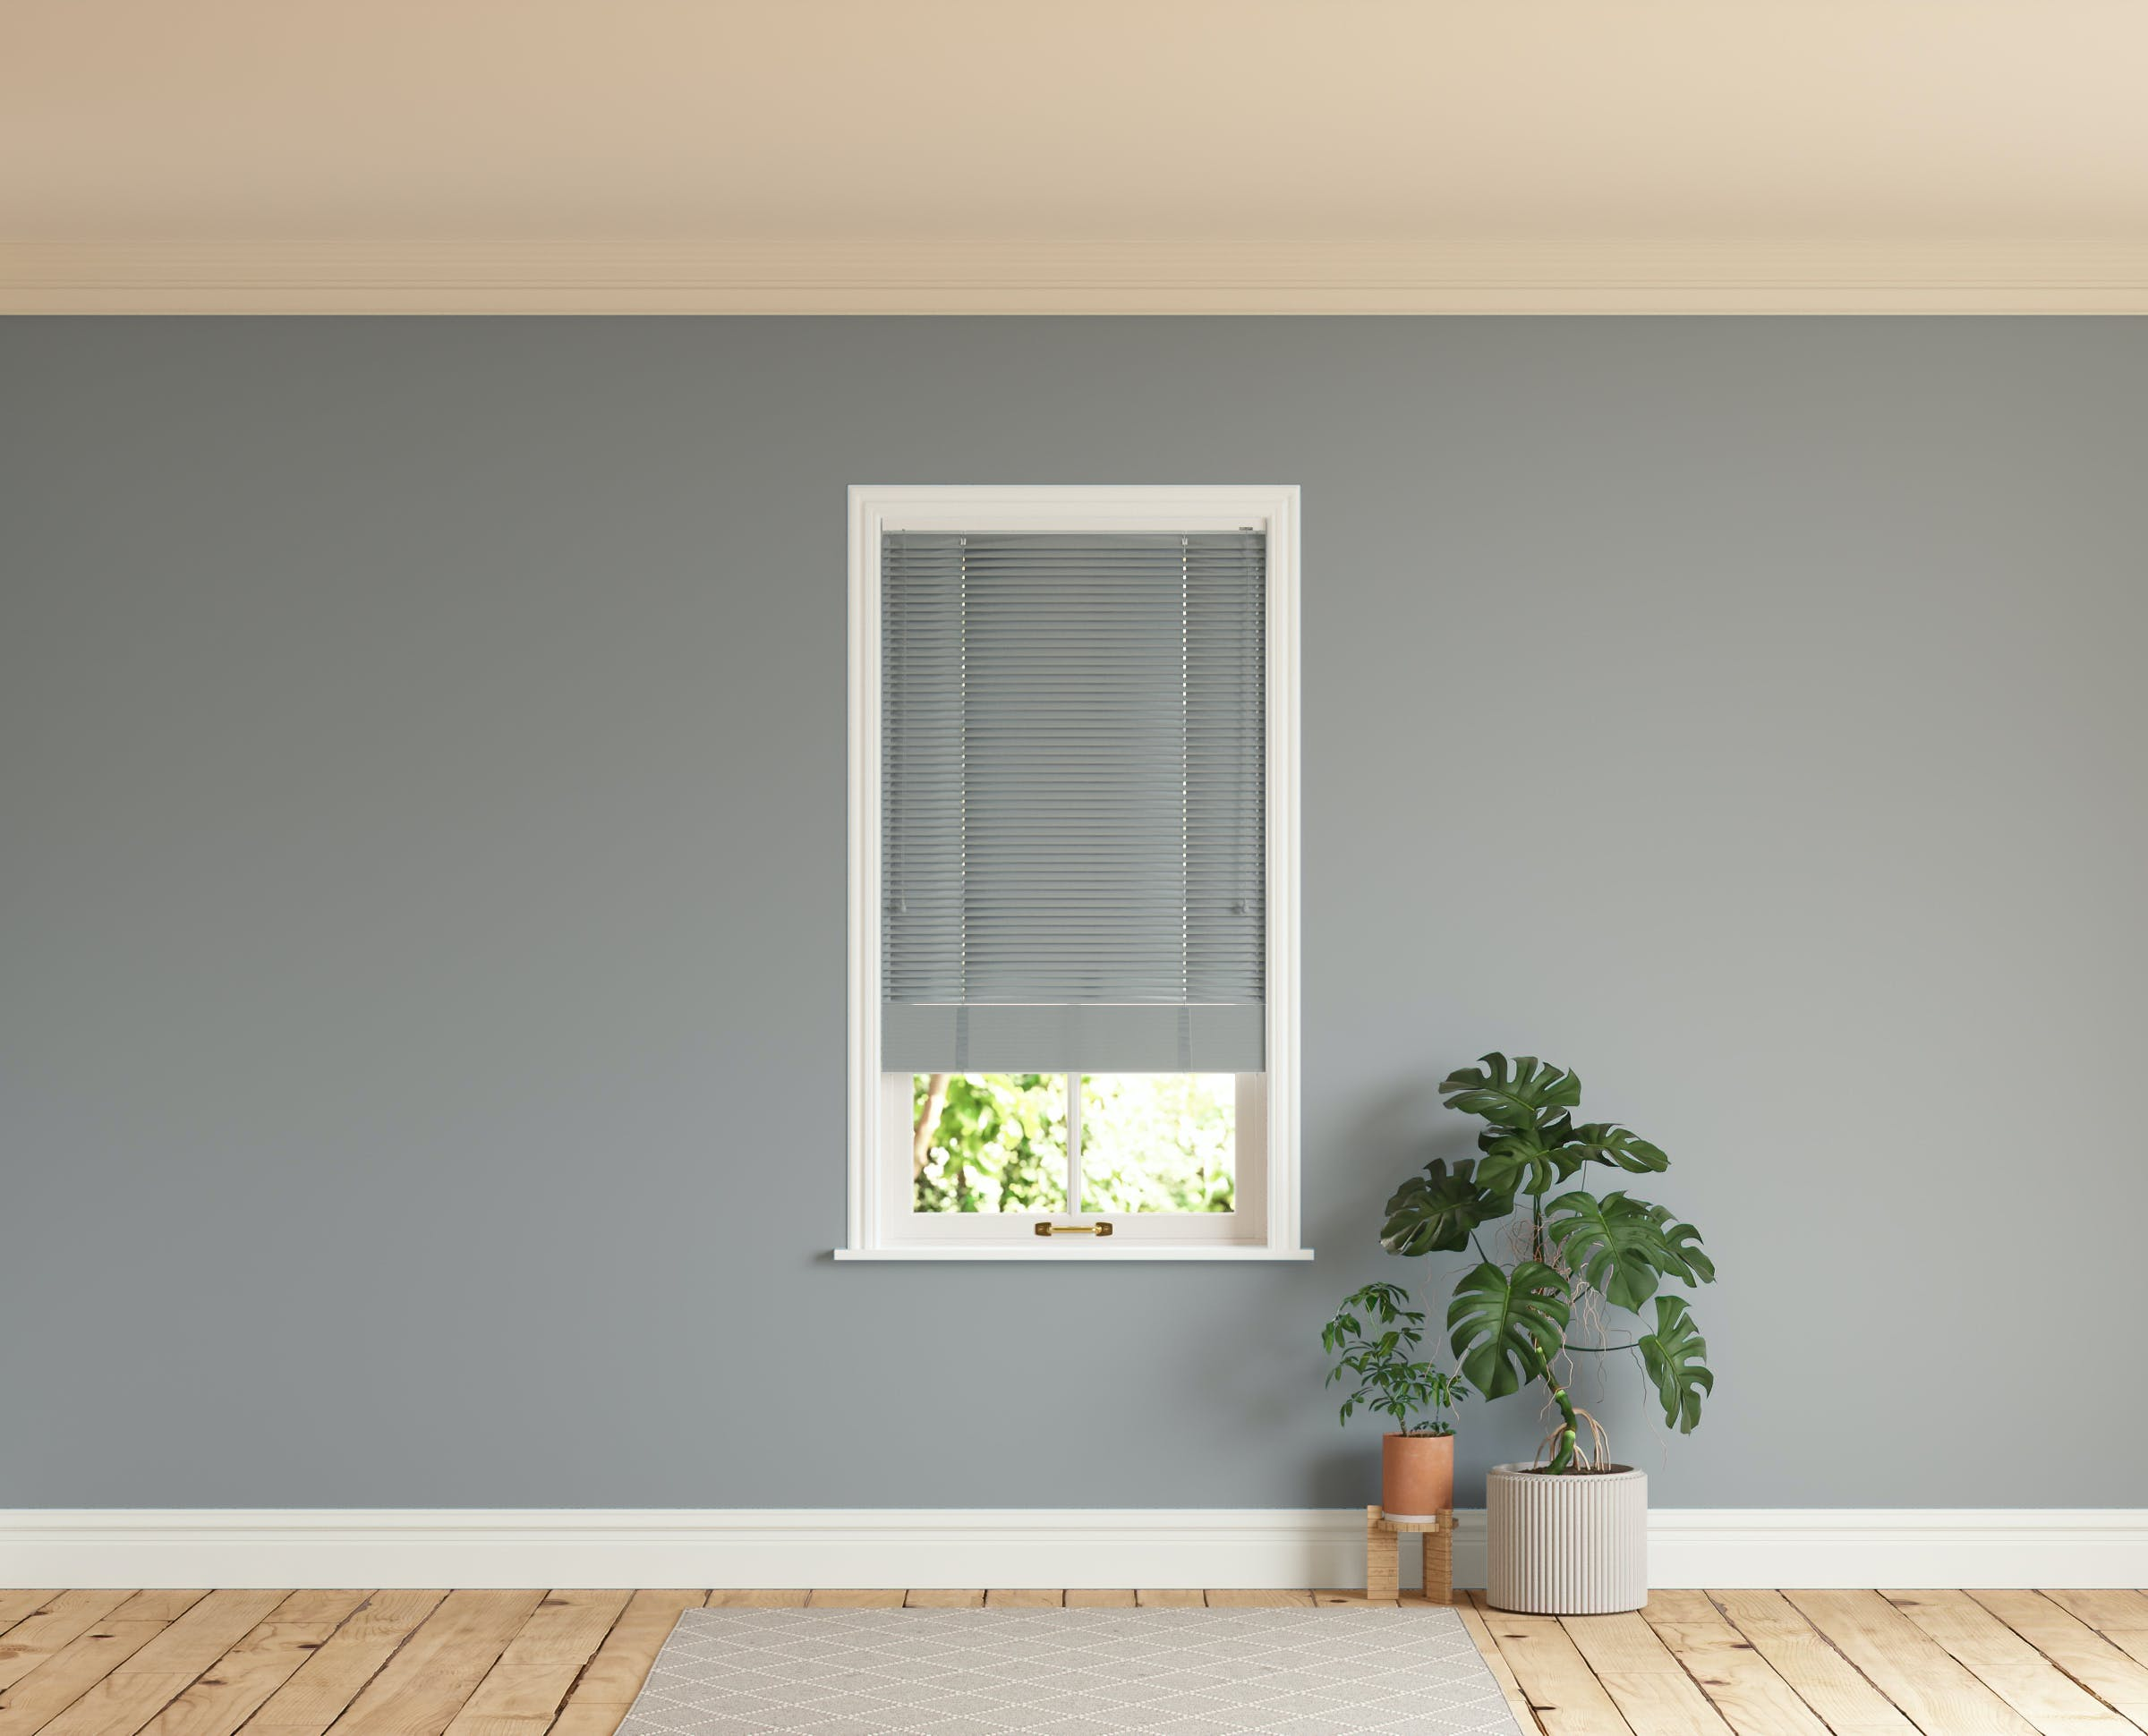 Room with walls painted in Lick Grey 06 and Grey 06 Venetian blinds